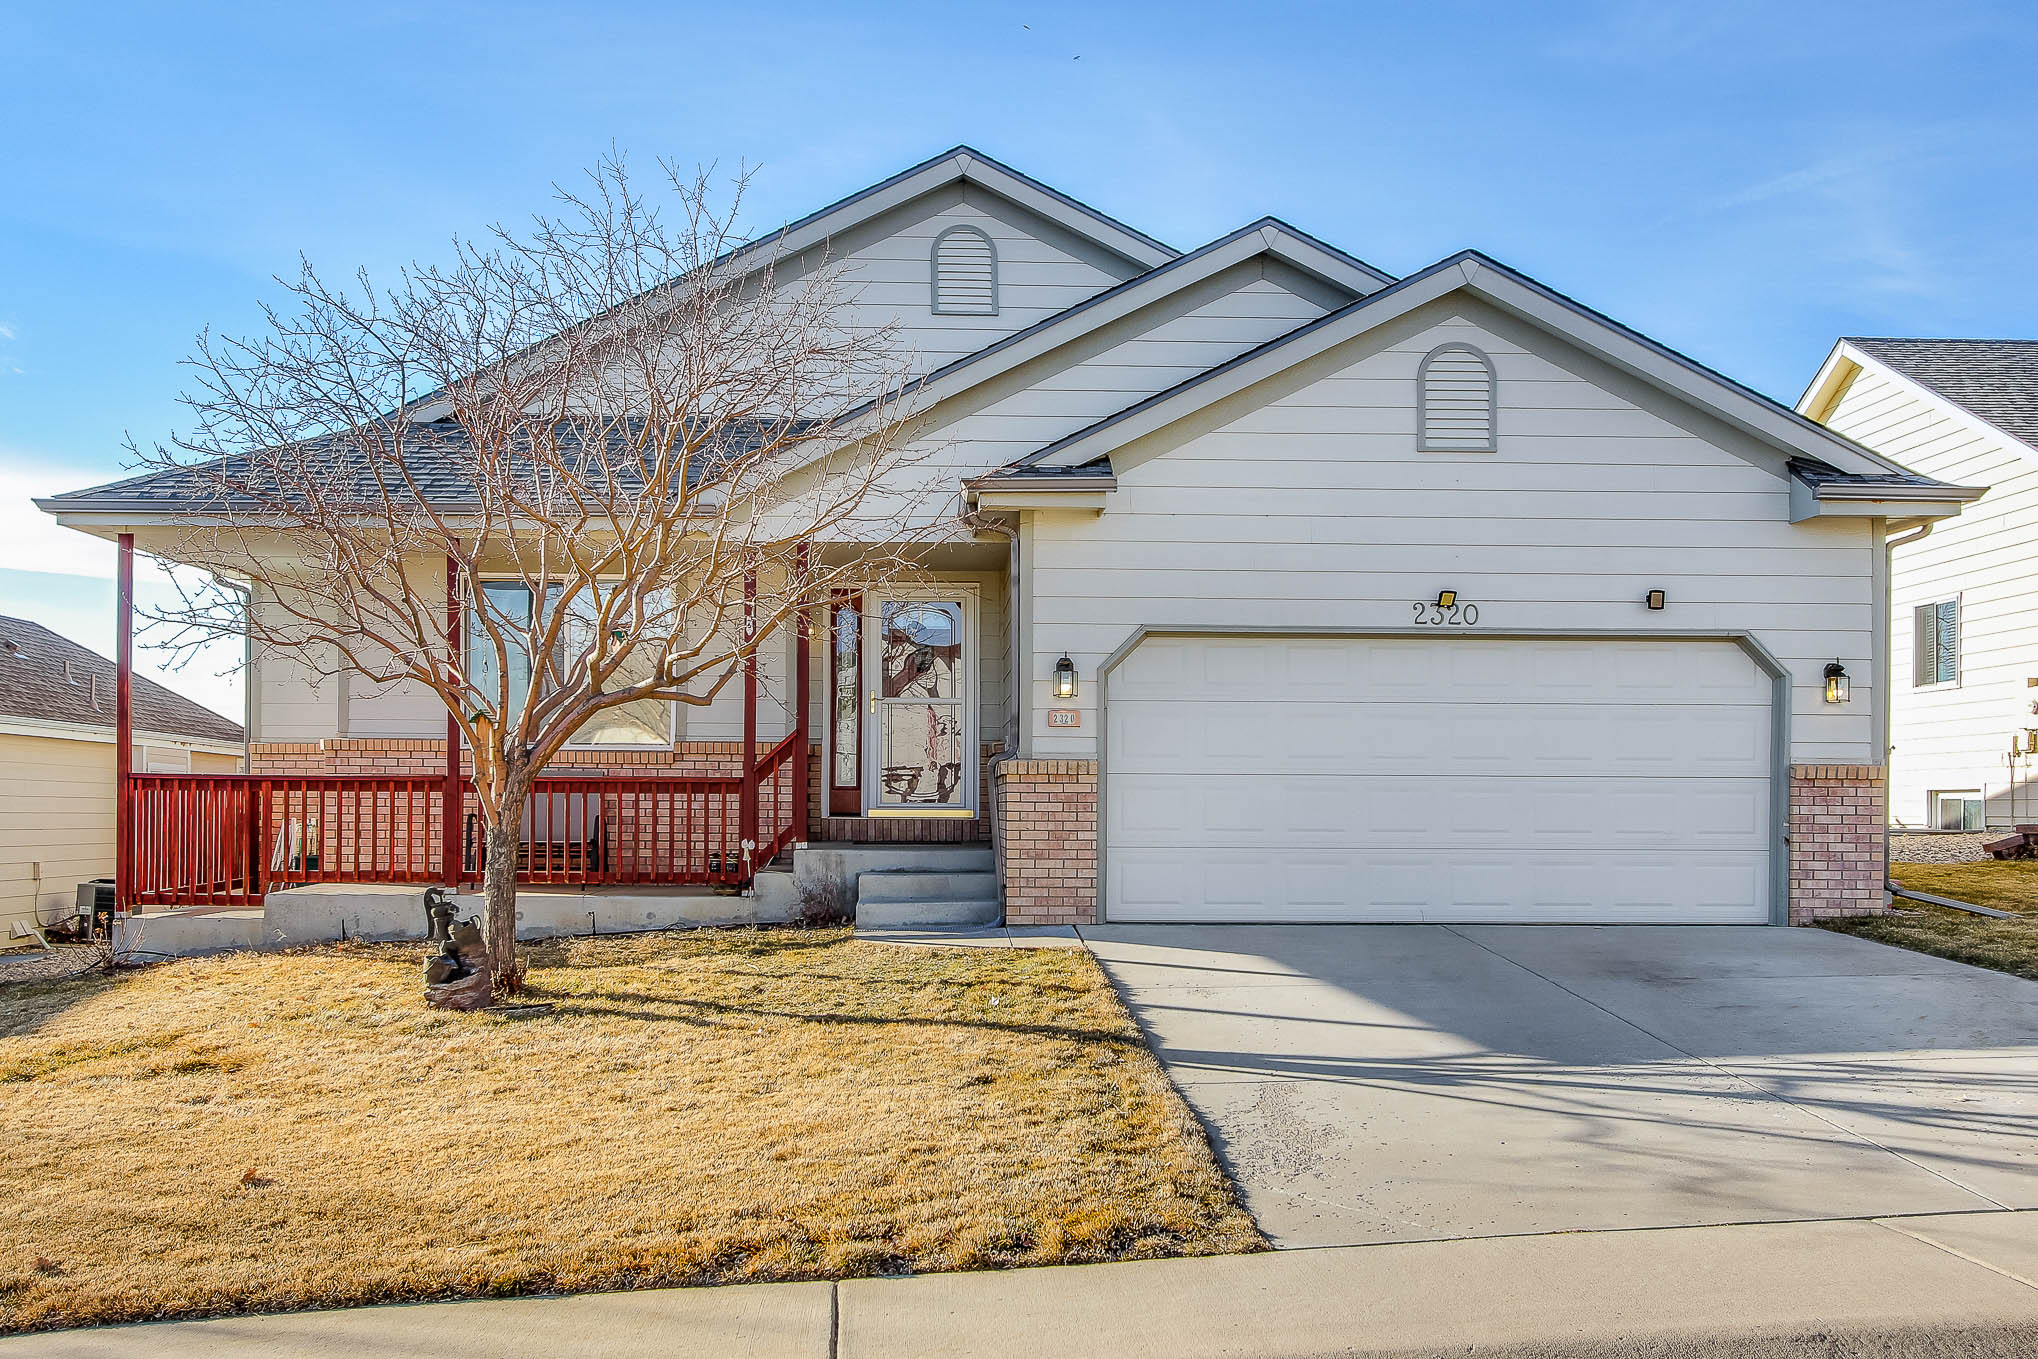 4 Bed, 3 Bath, Full Finished Basement, Abuts Golf Course $379,000